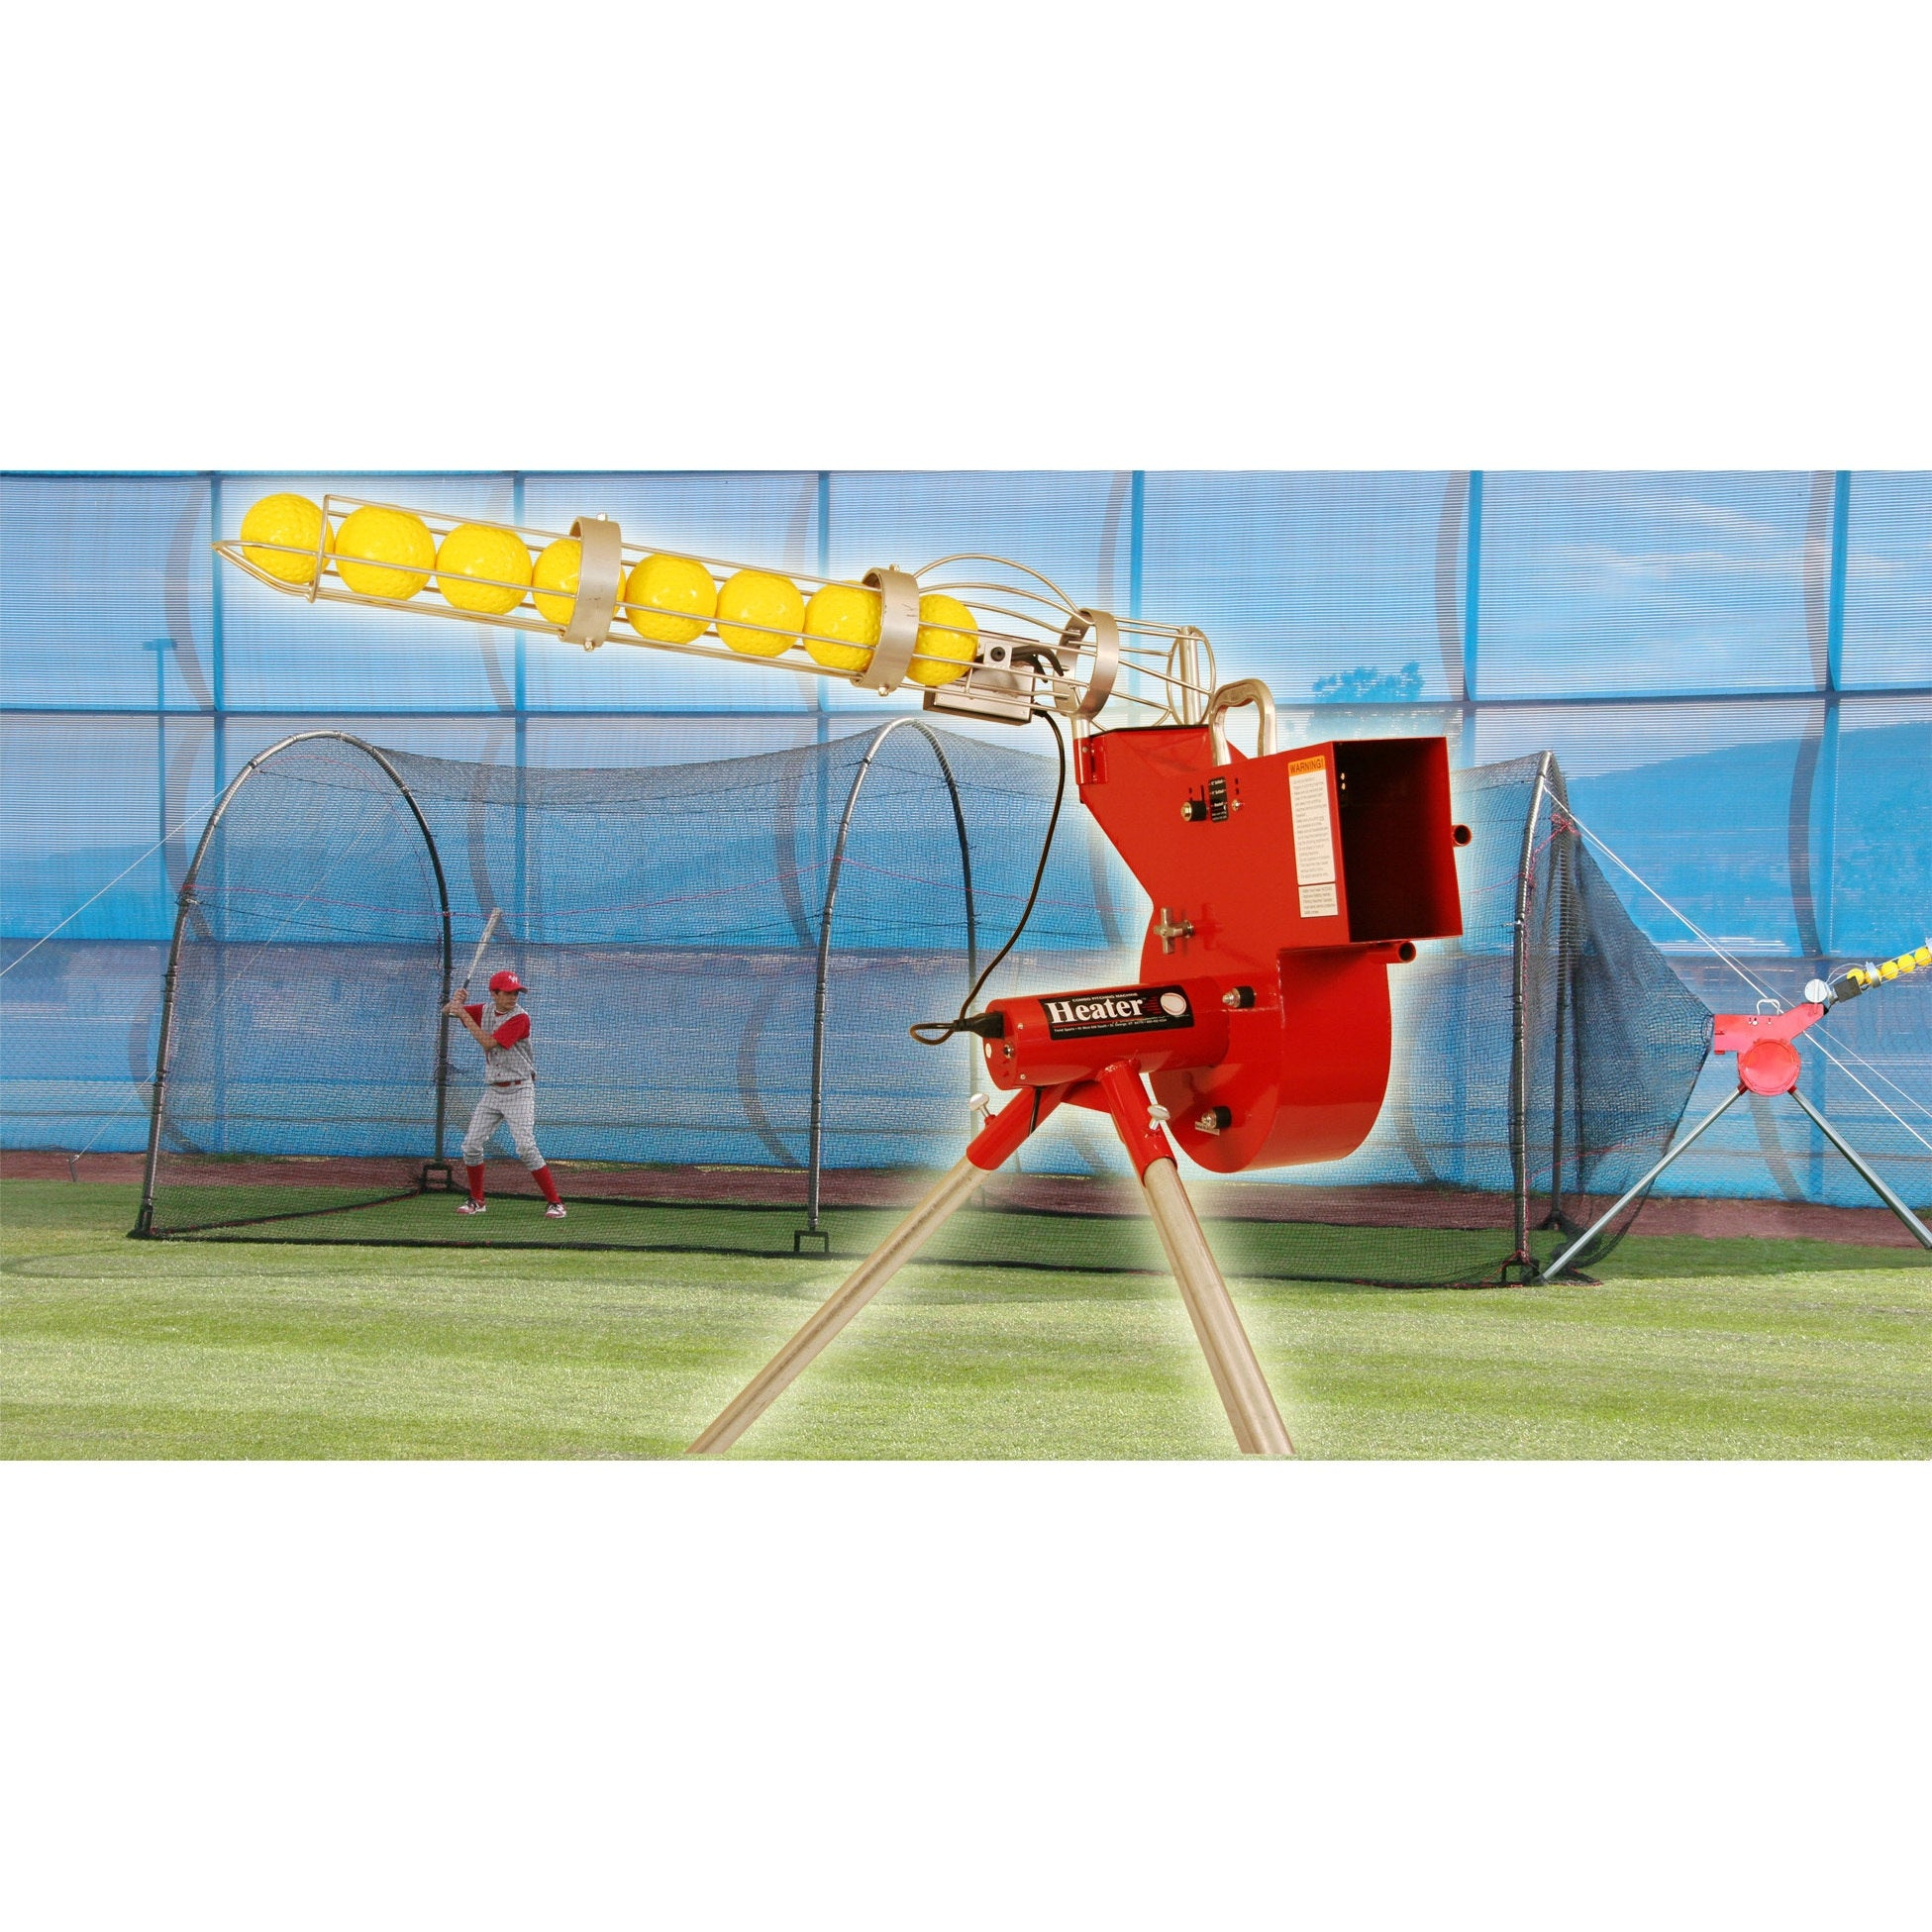 Heater Baseball Softball Combo Pitching Machine With Auto